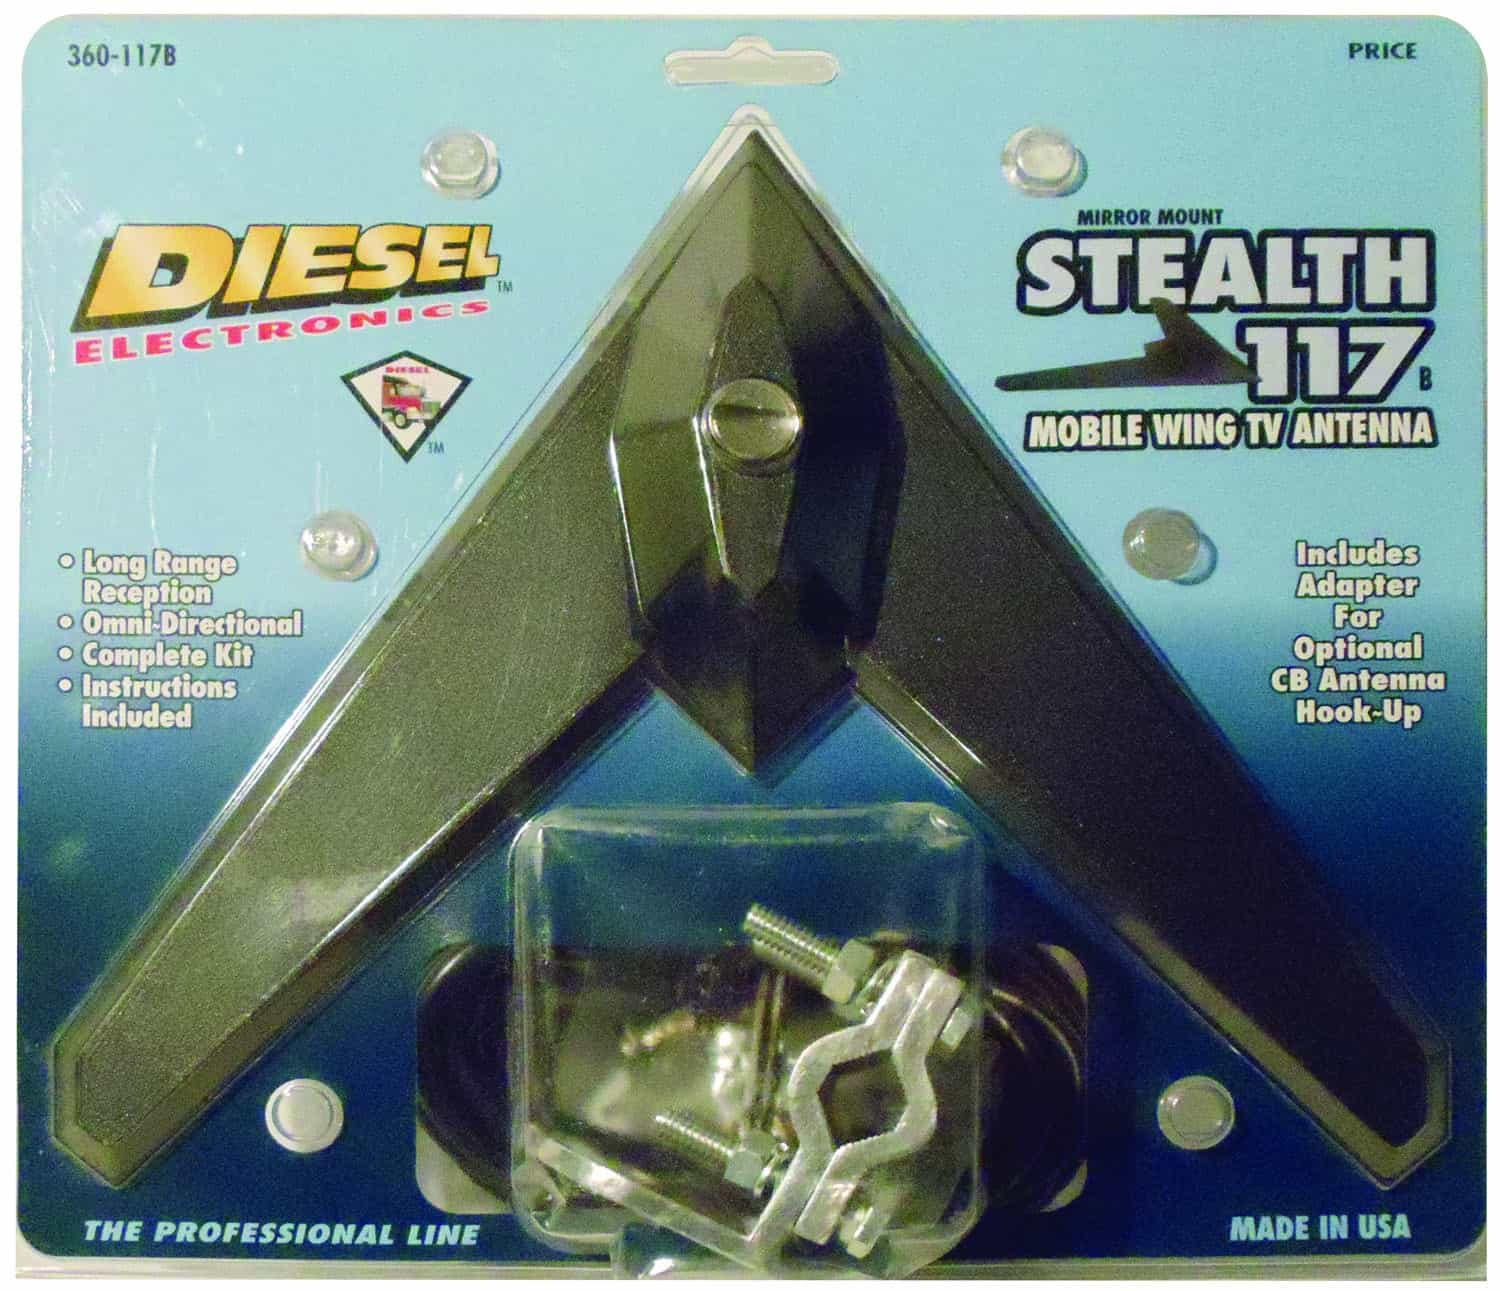 360117MB - Diesel Stealth 117 Mobile Wing TV Antenna